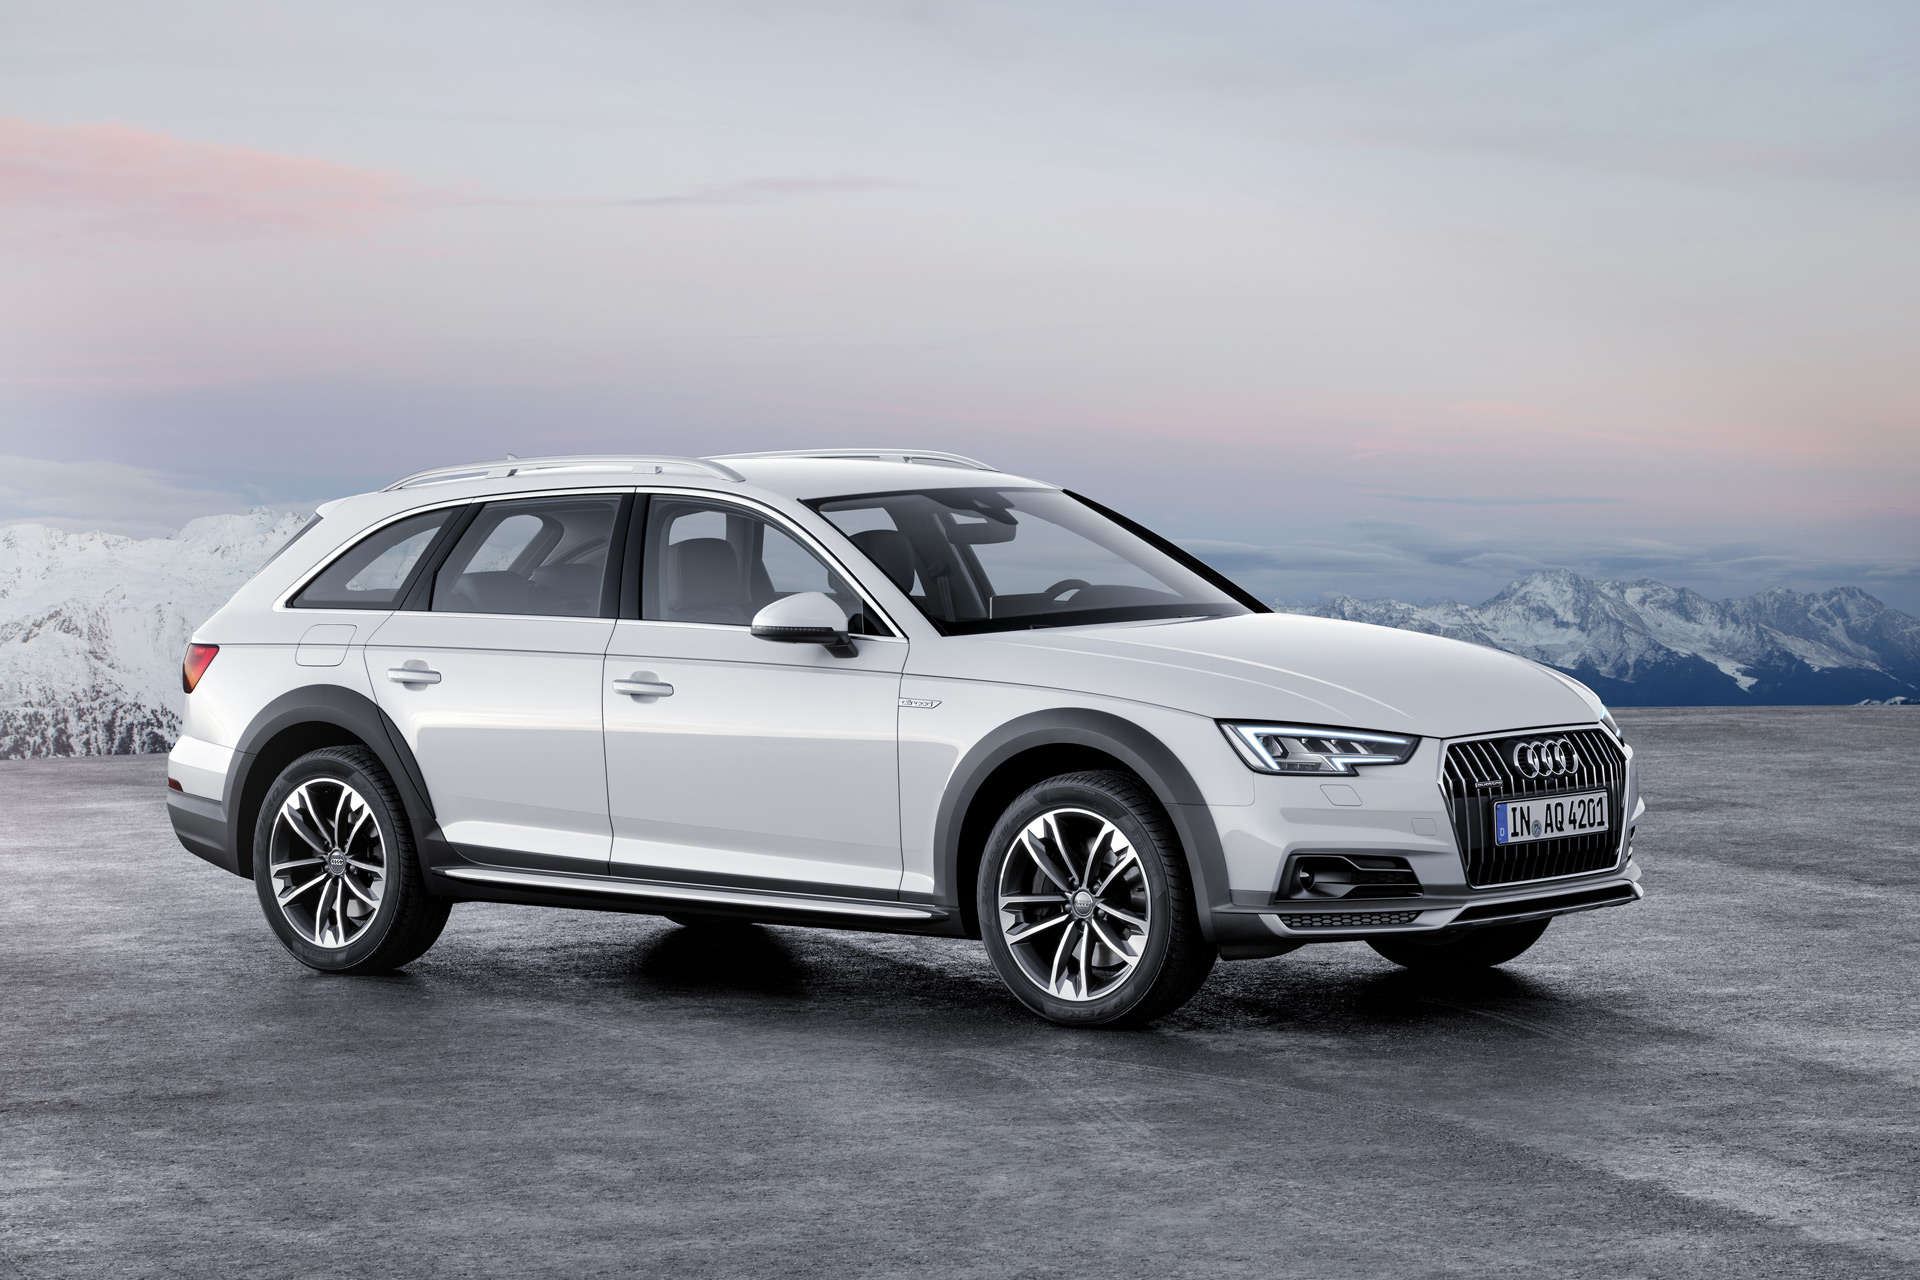 2017 Audi A4 Allroad preview